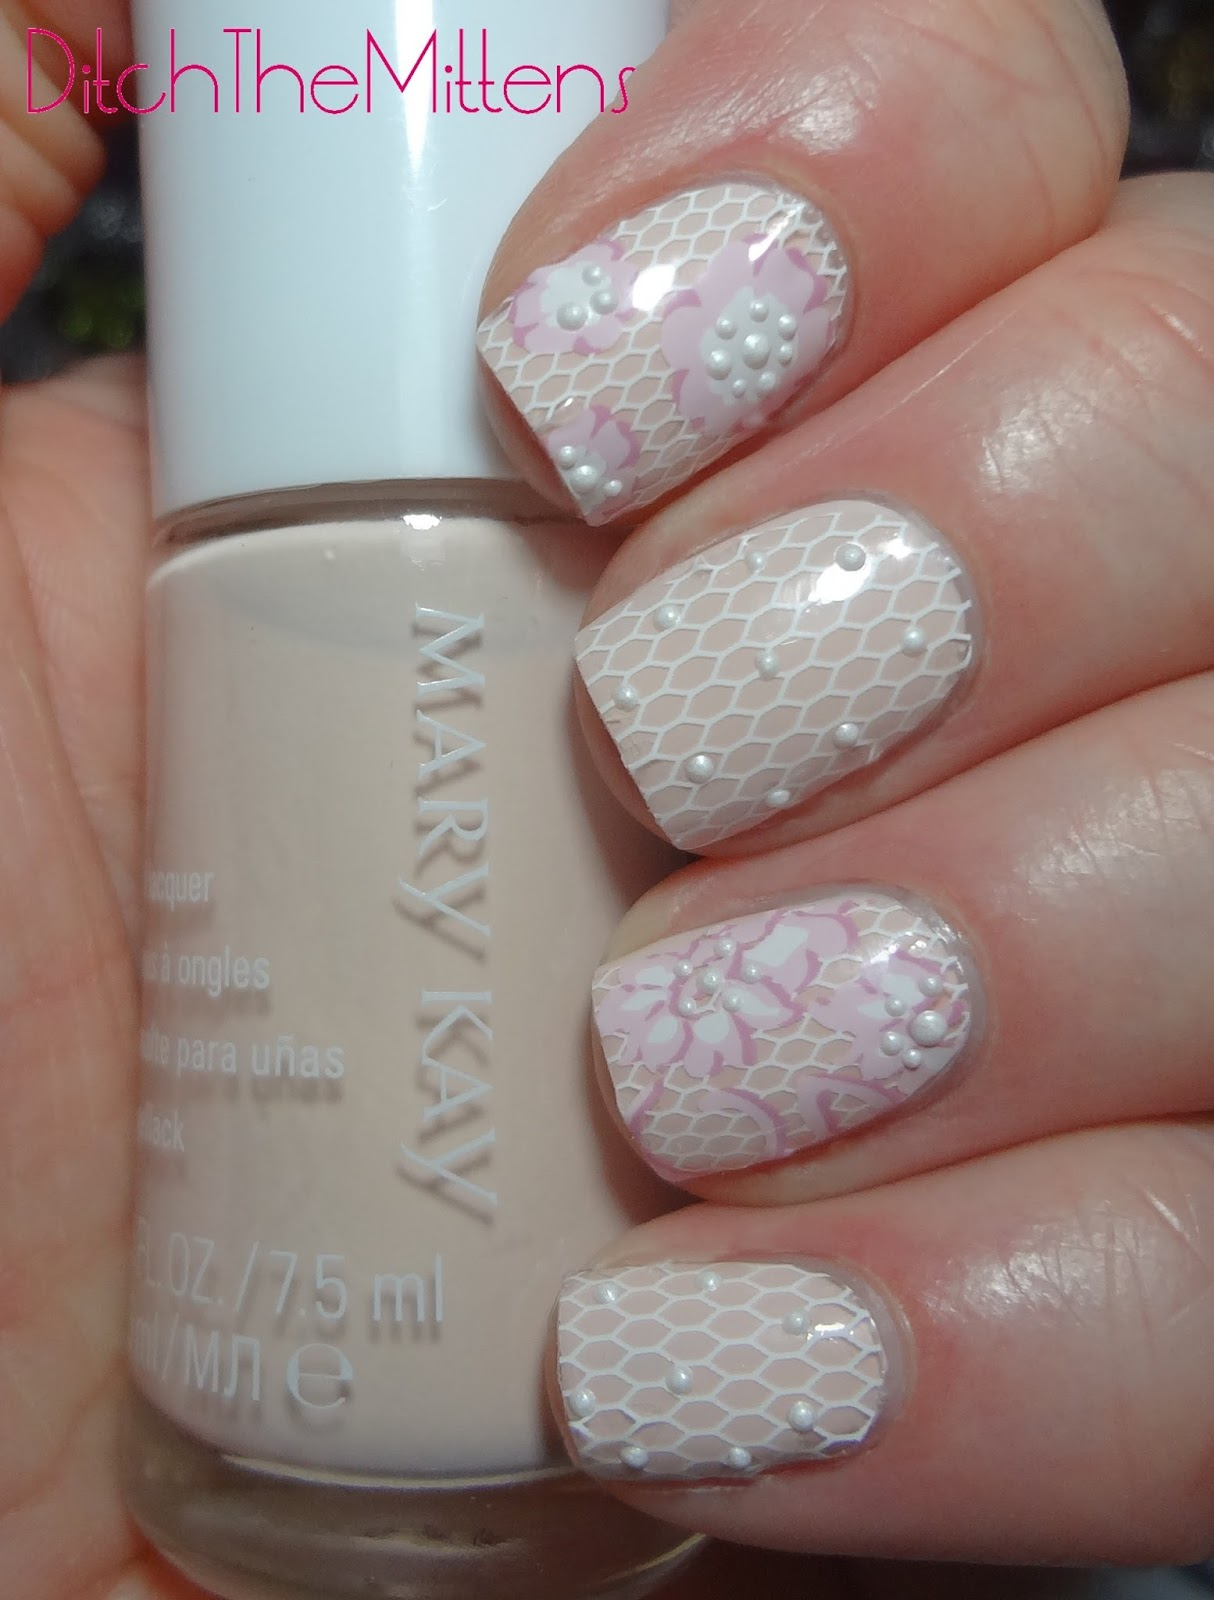 Ditch the Mittens: Mary Kay Into The Garden Nail Appliques